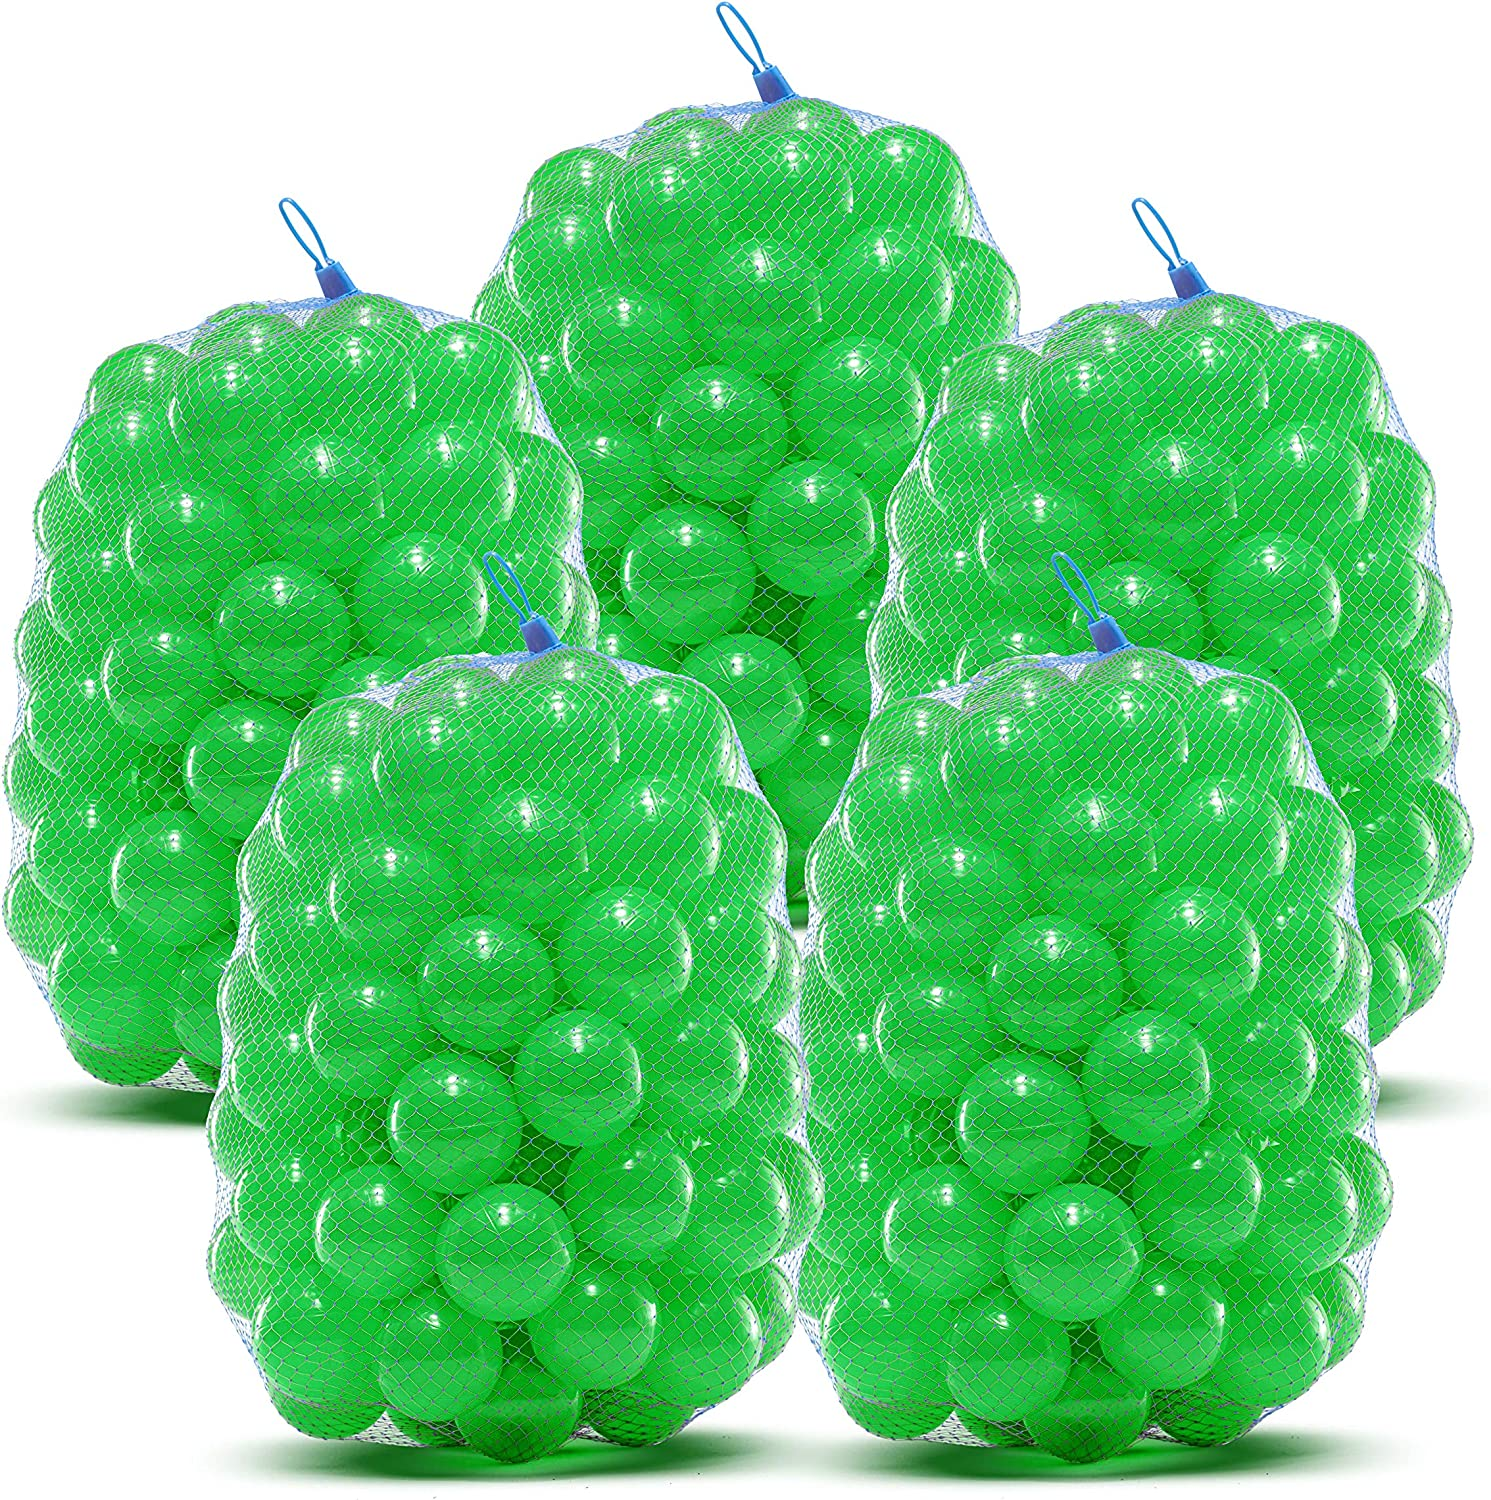 Ball Pit Balls - Phthalate and BPA Free -Crush Resistant Plastic Pit Balls - Kiddy Trampoline Balls For Ball Pit and Bounce House Balls. For ball pits for toddlers, bathtime, or, swimming pool - Green